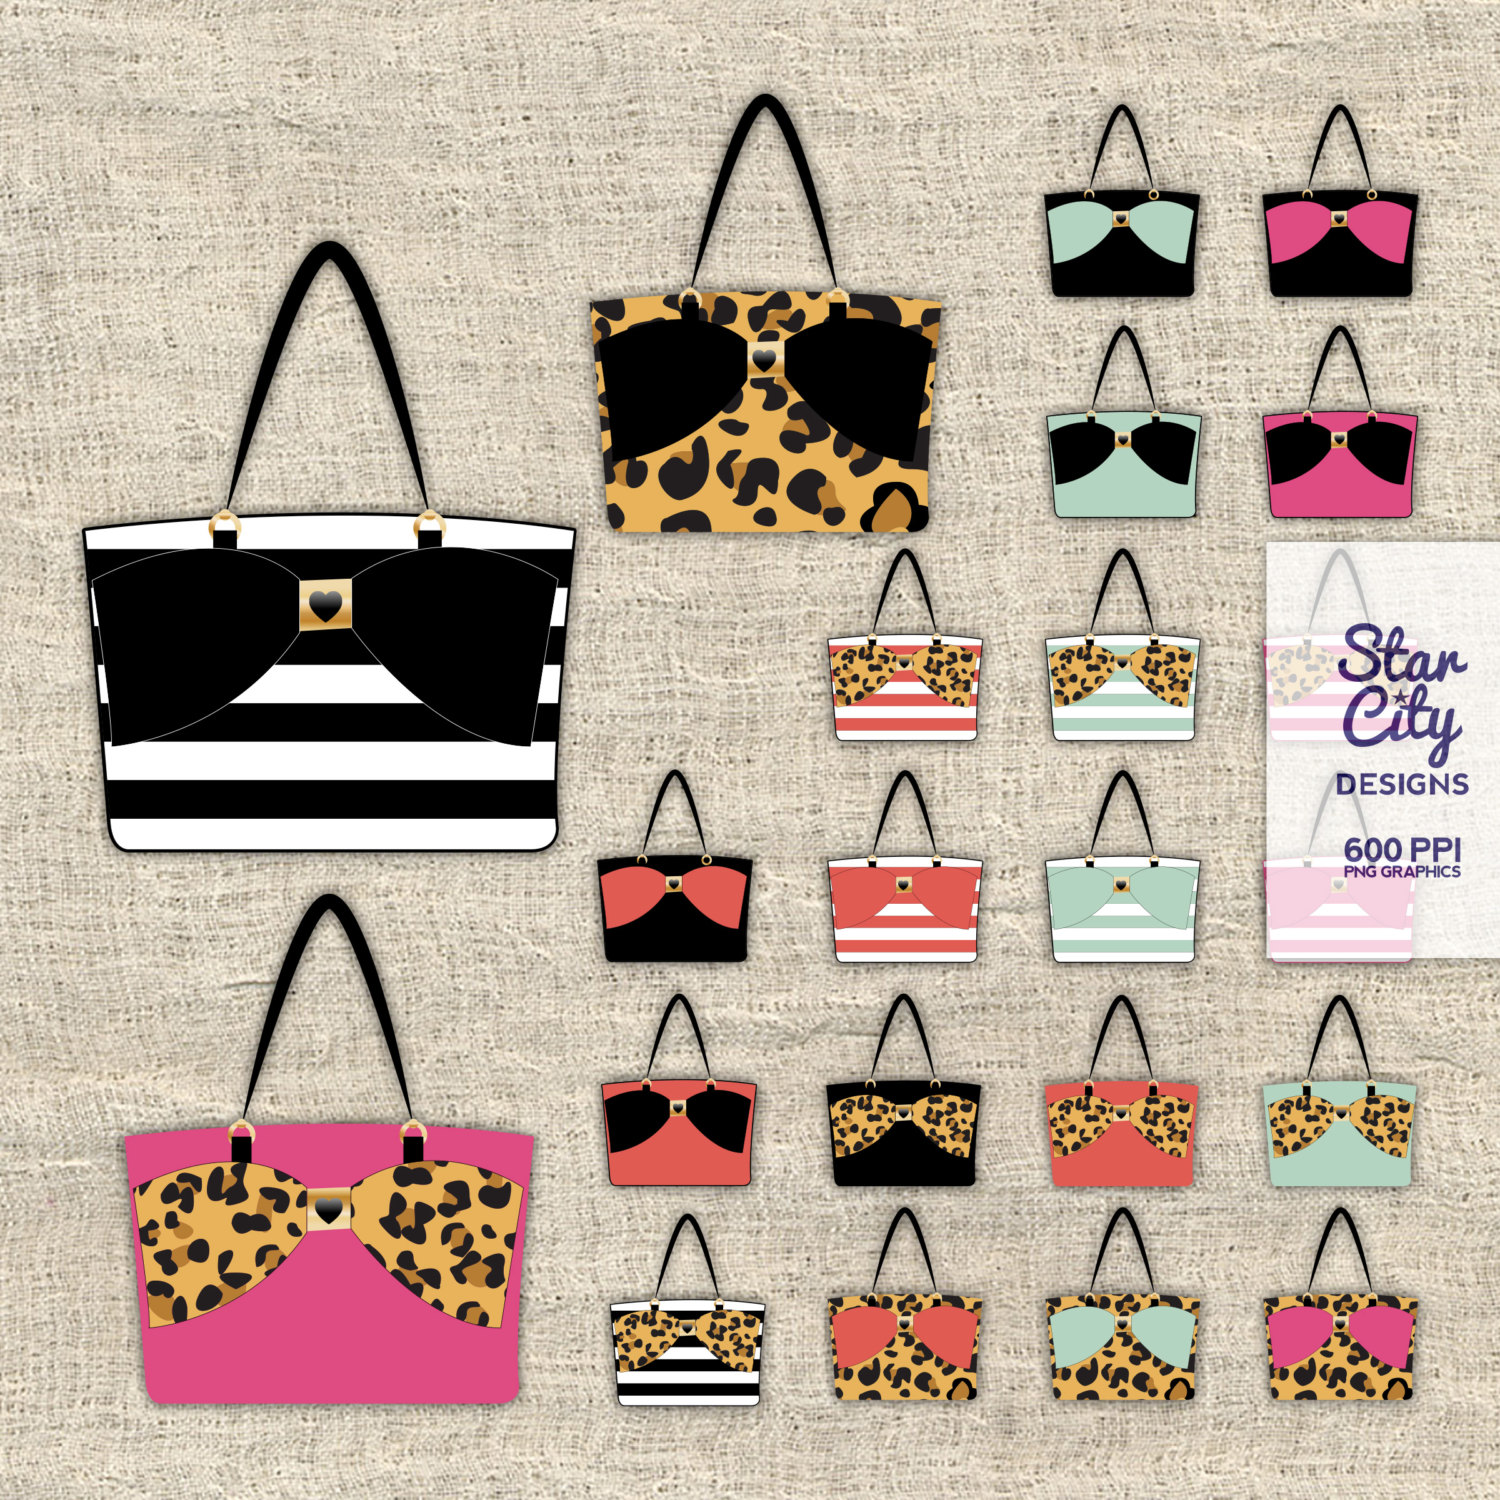 Bag clipart handbag. Tote purse bow